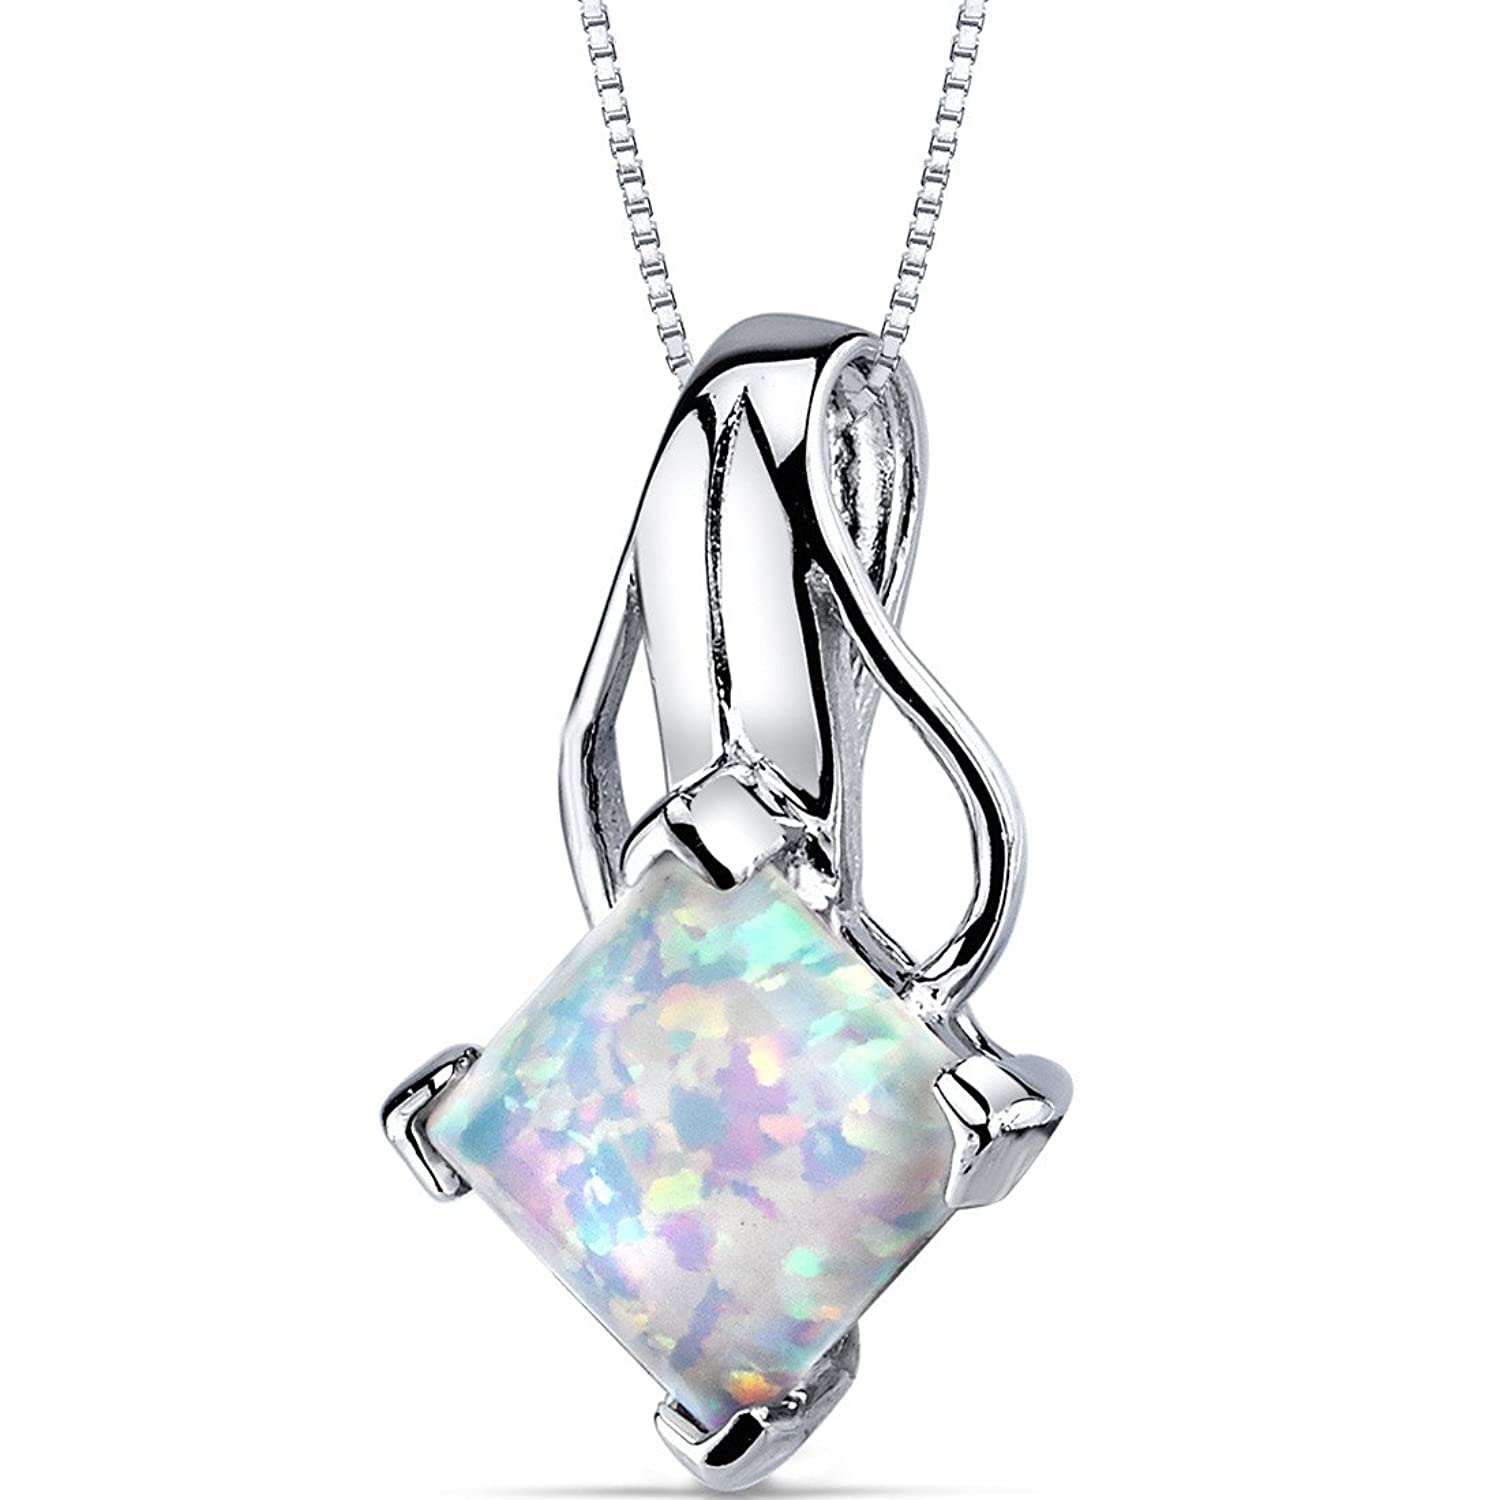 white modern gold simple original product opal pendant opalescence glass necklace